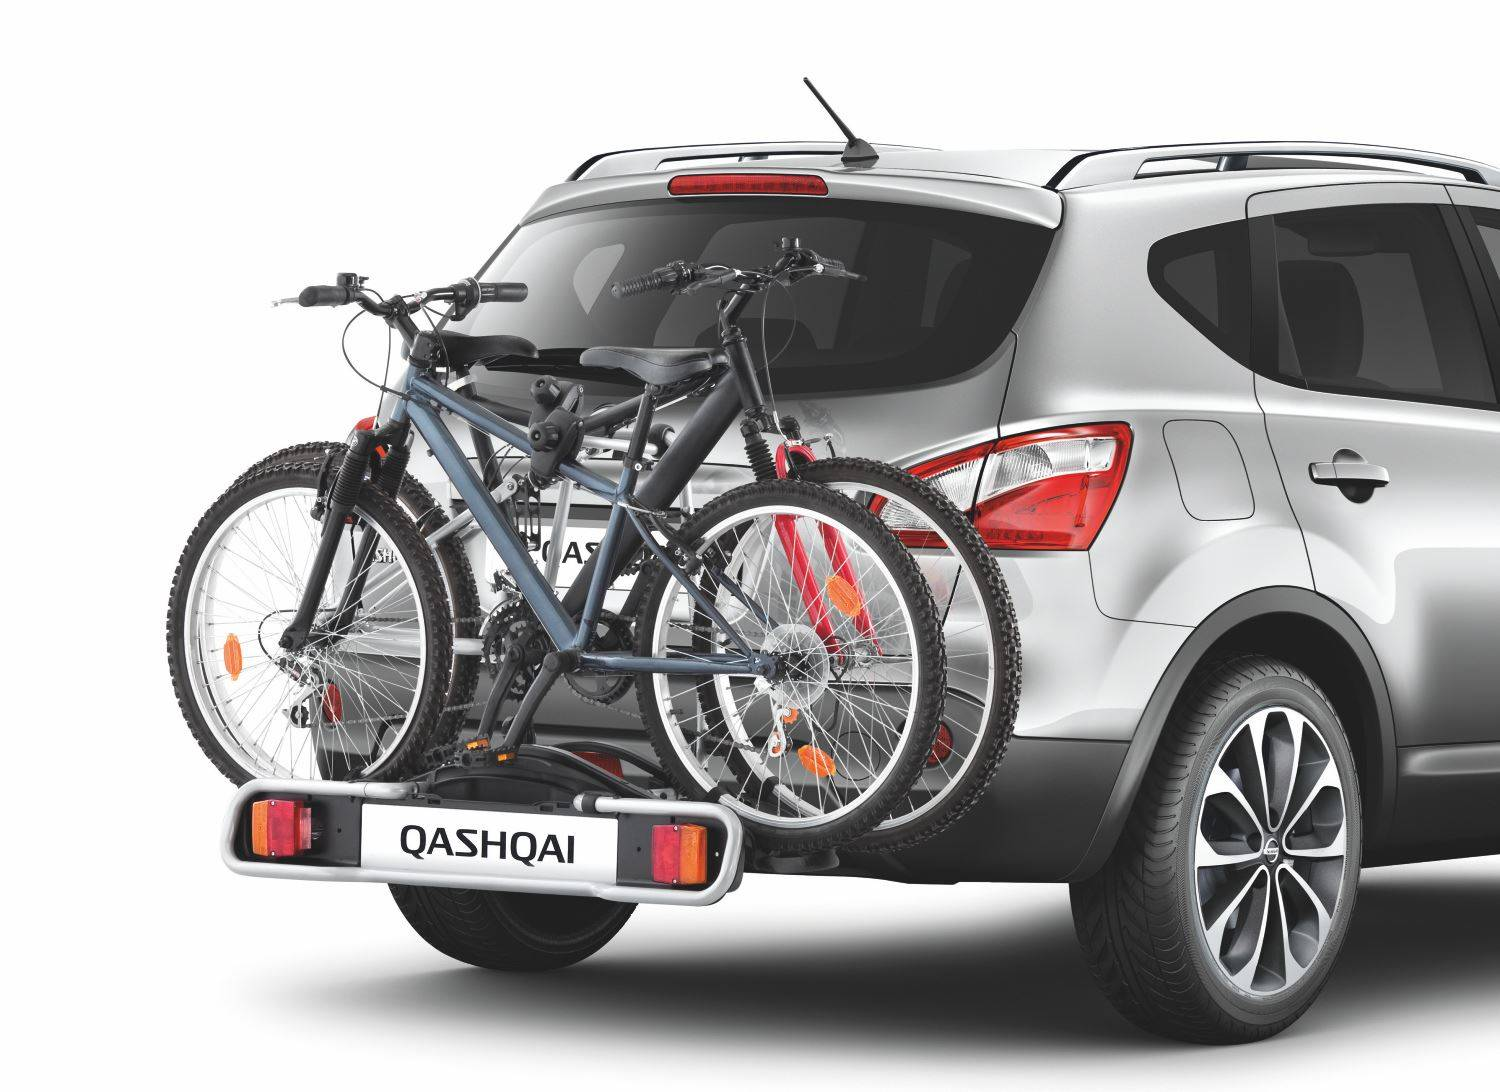 Nissan-Qashqai-(2014--2017)-Bike-Carrier---Towbar-Mounted-7-Pins--2-Bikes-KE73870207 1